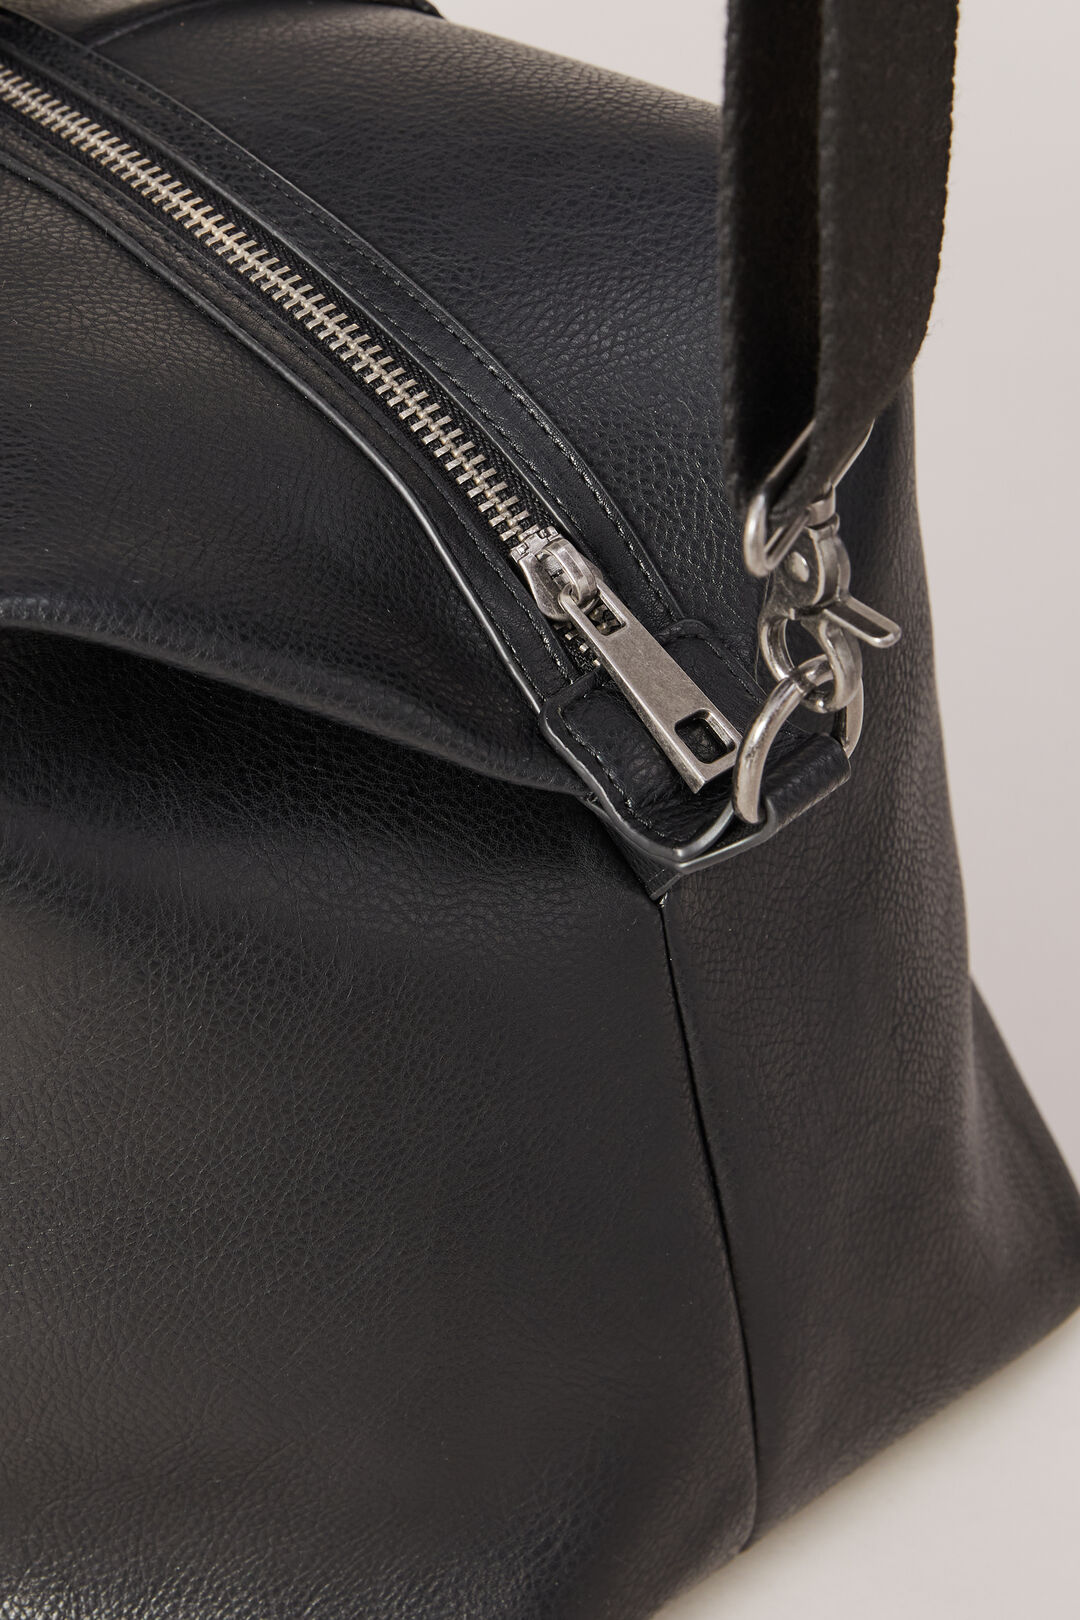 LEATHER LOOK HOLD ALL  BLACK  hi-res